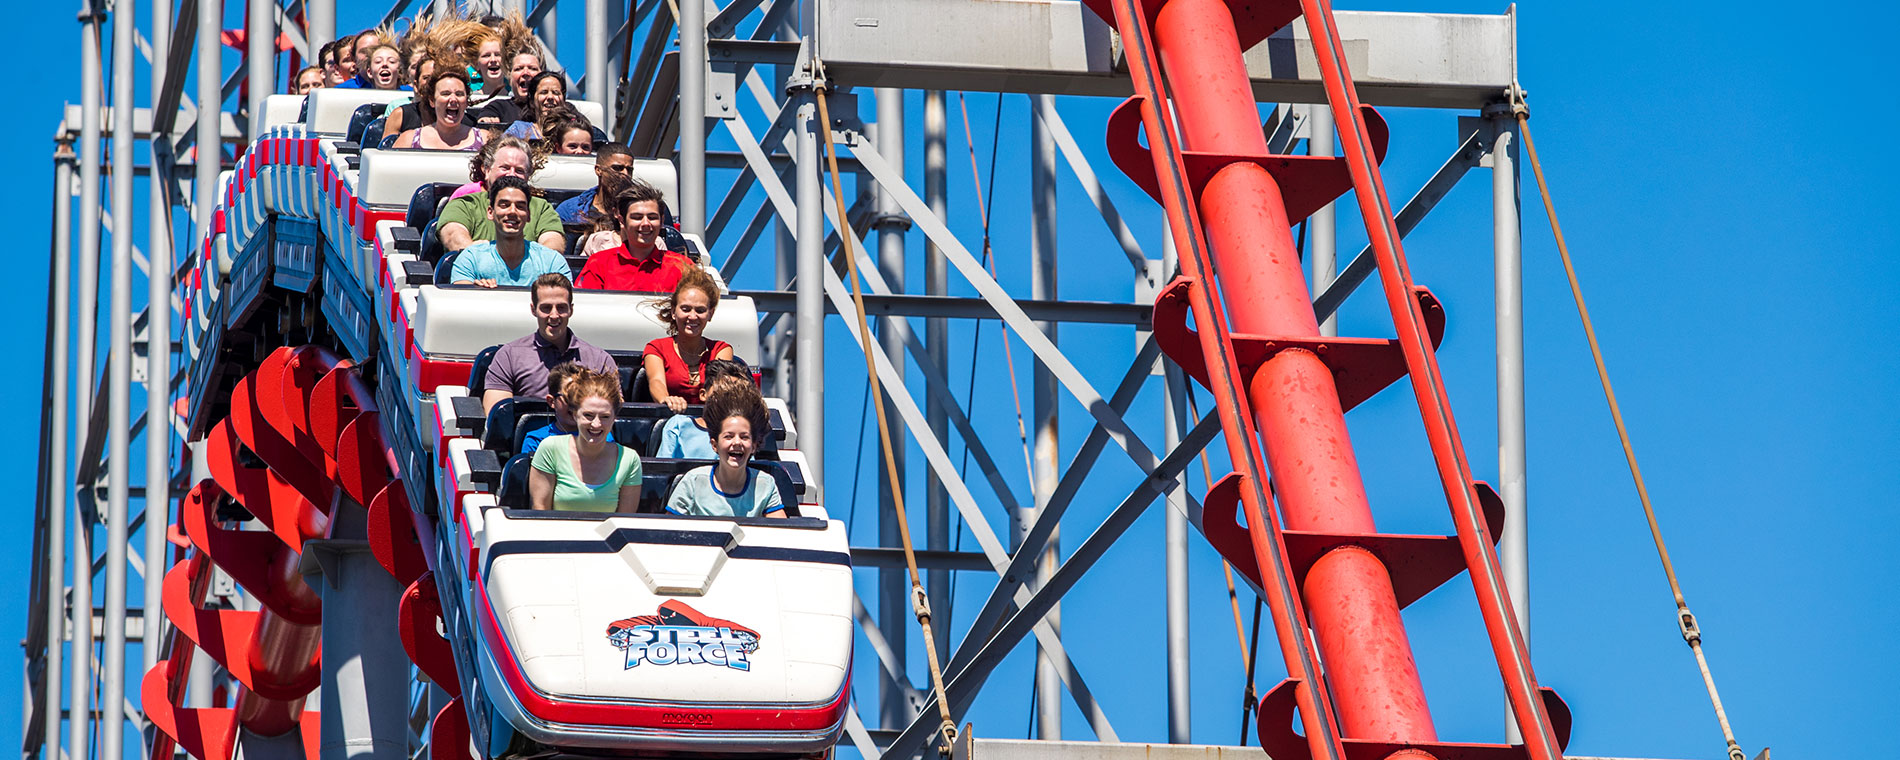 Corporate Group Events & Activities at Dorney Park